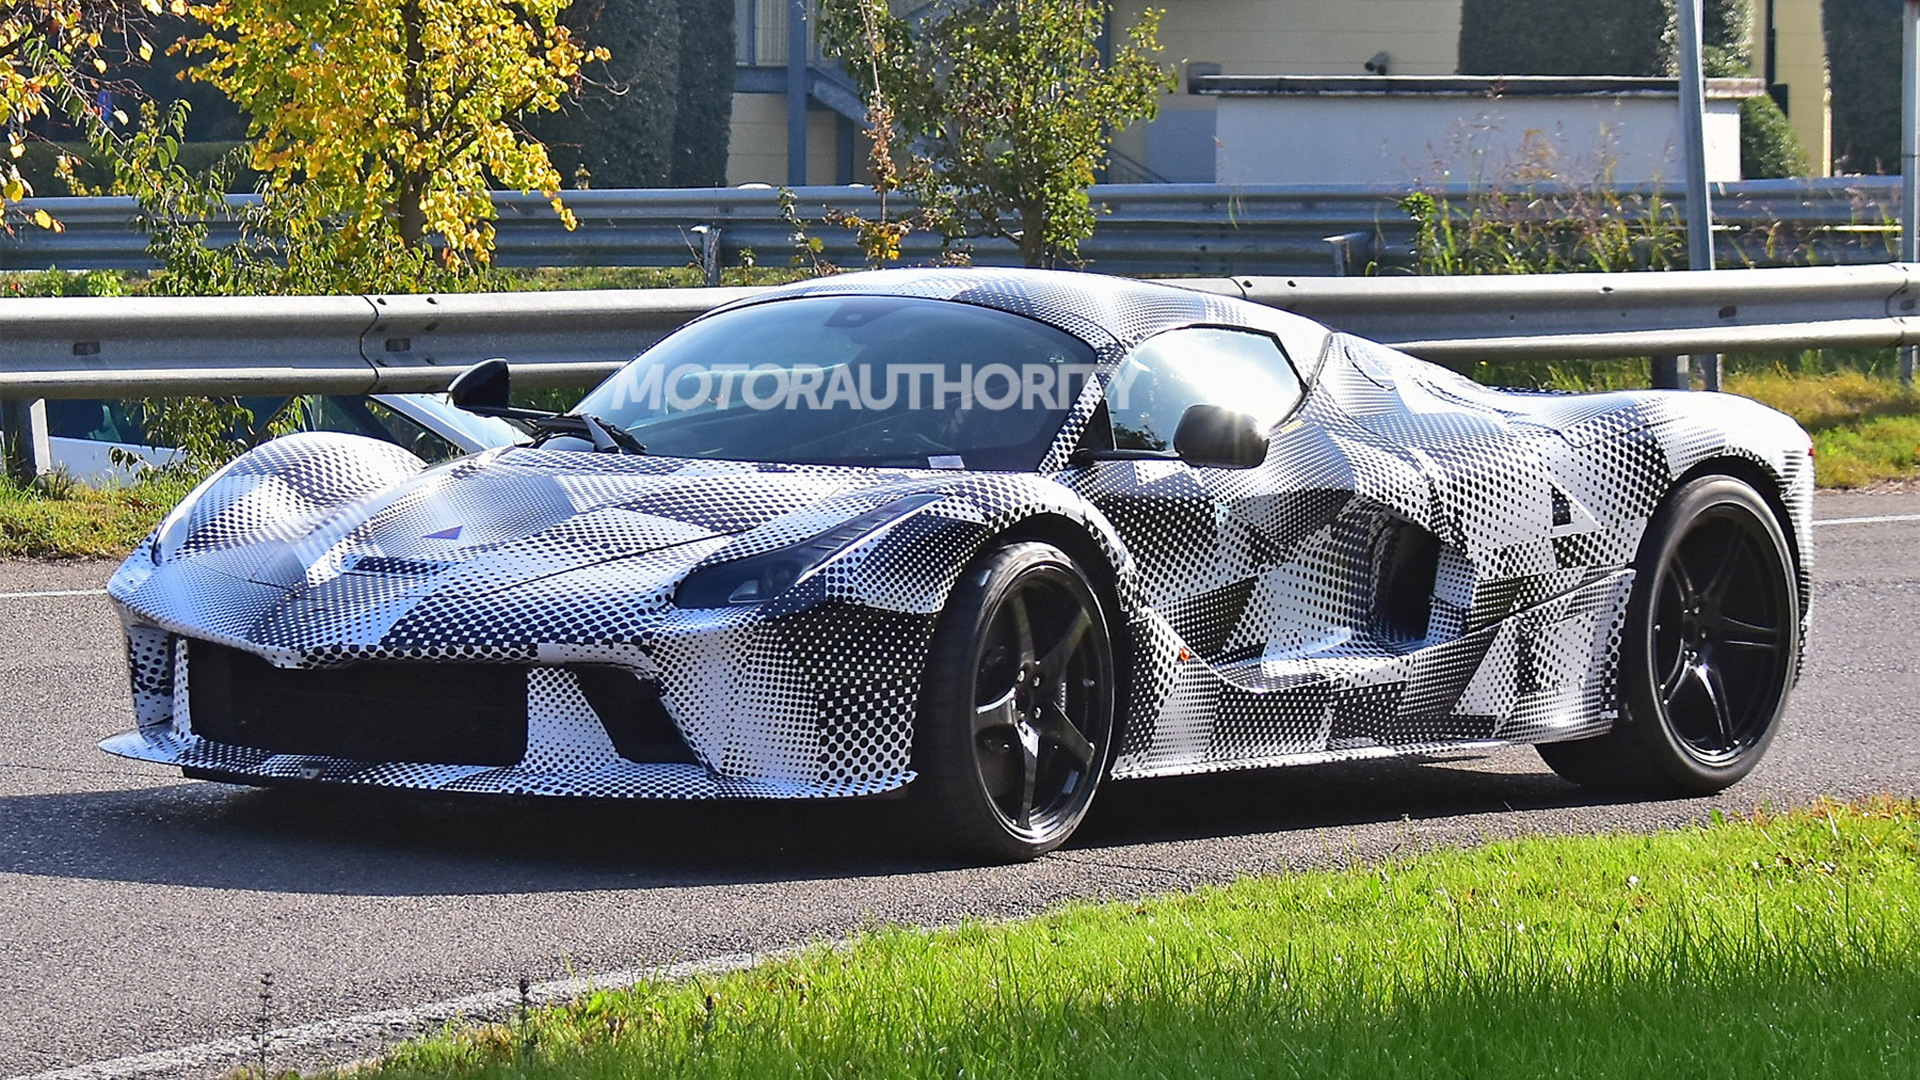 Ferrari Special Series test mule spy shots - Photo credit: S. Baldauf/SB-Medien